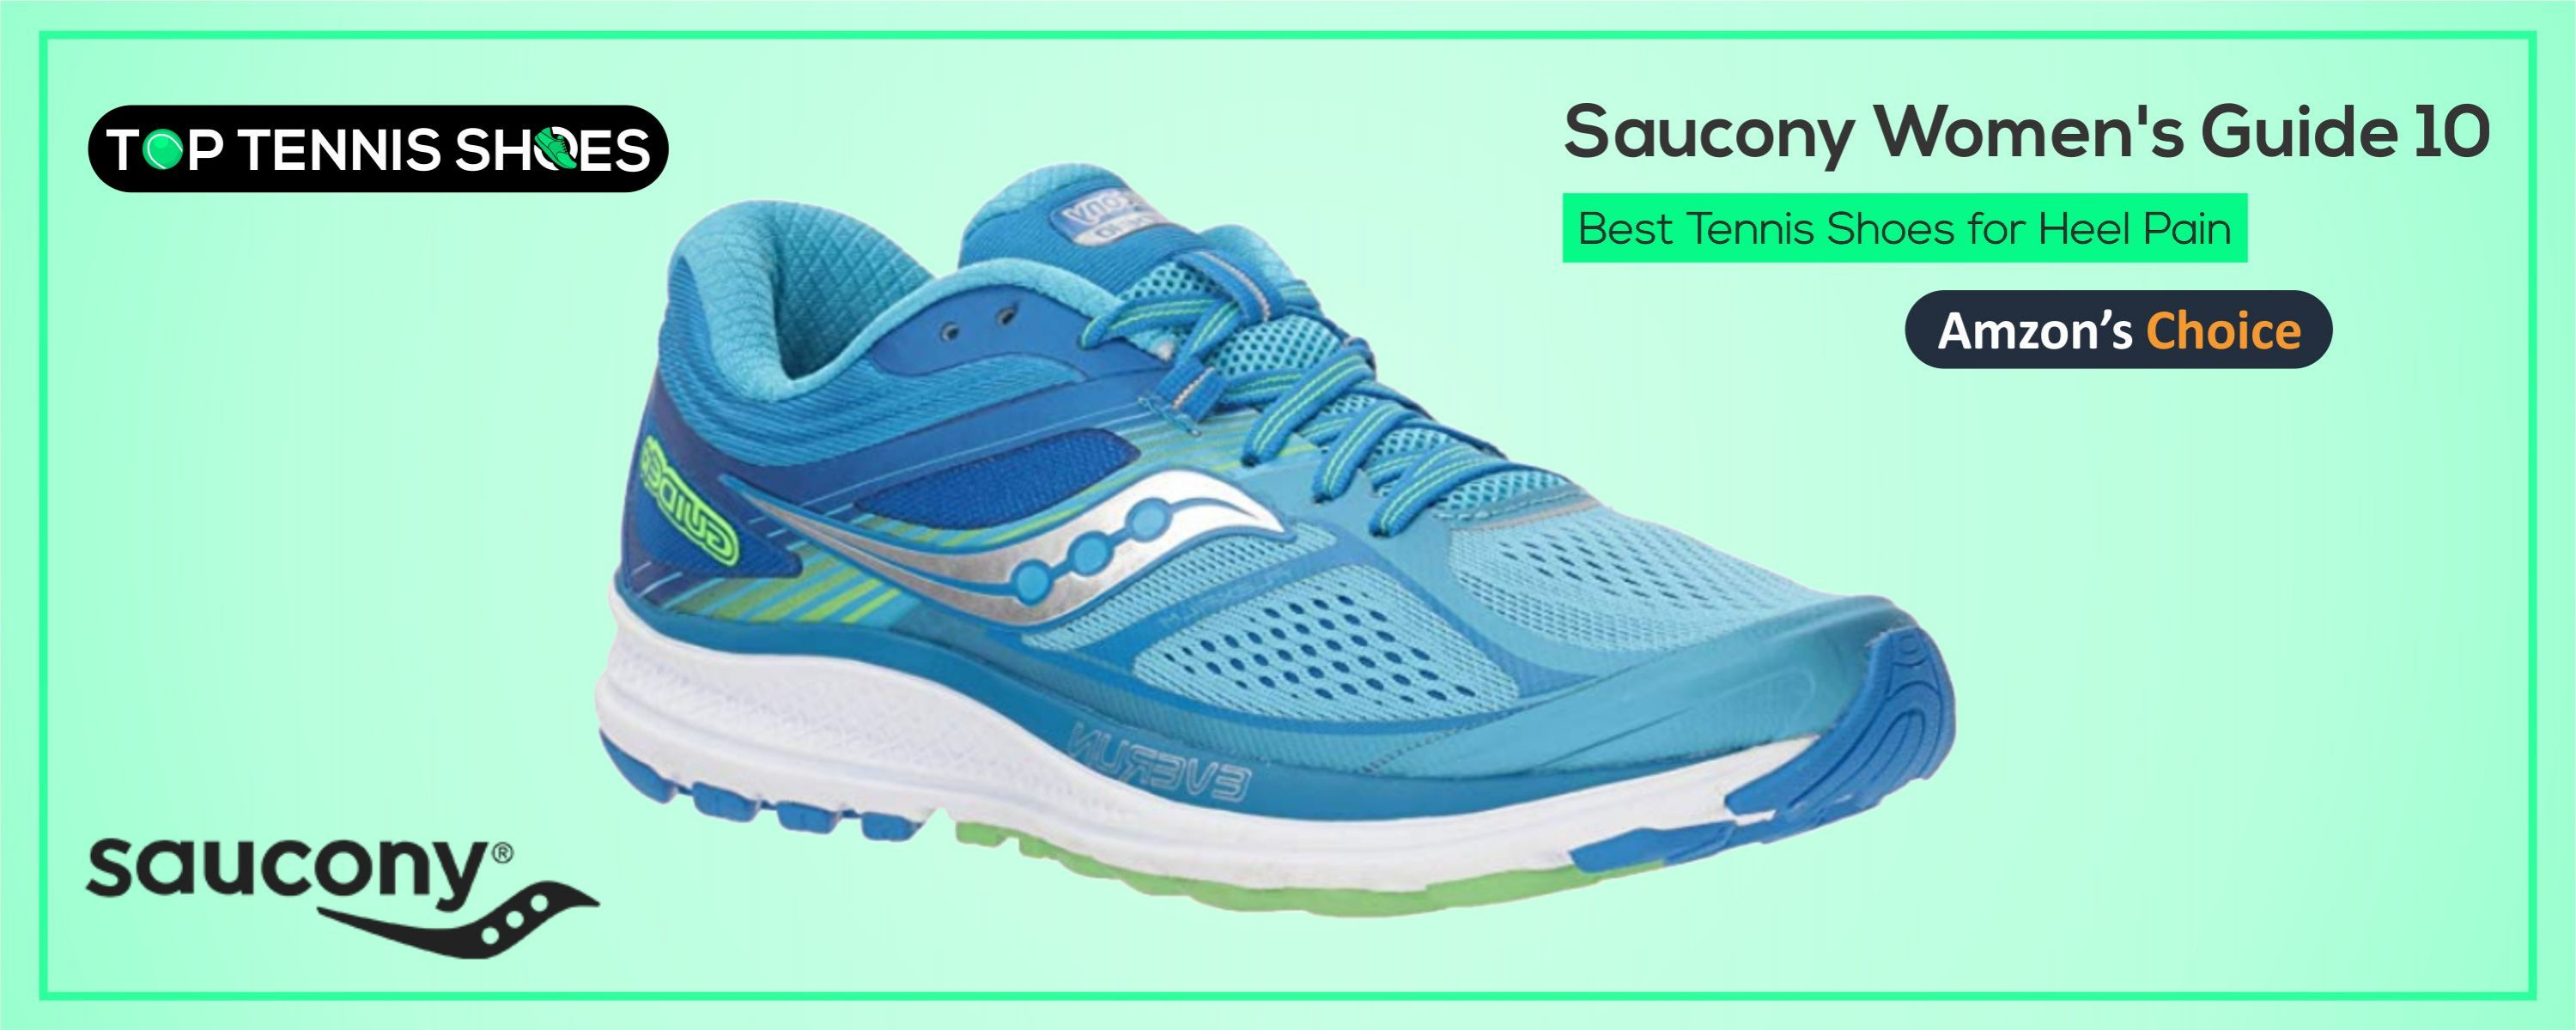 Saucony Tennis shoes for heel pain